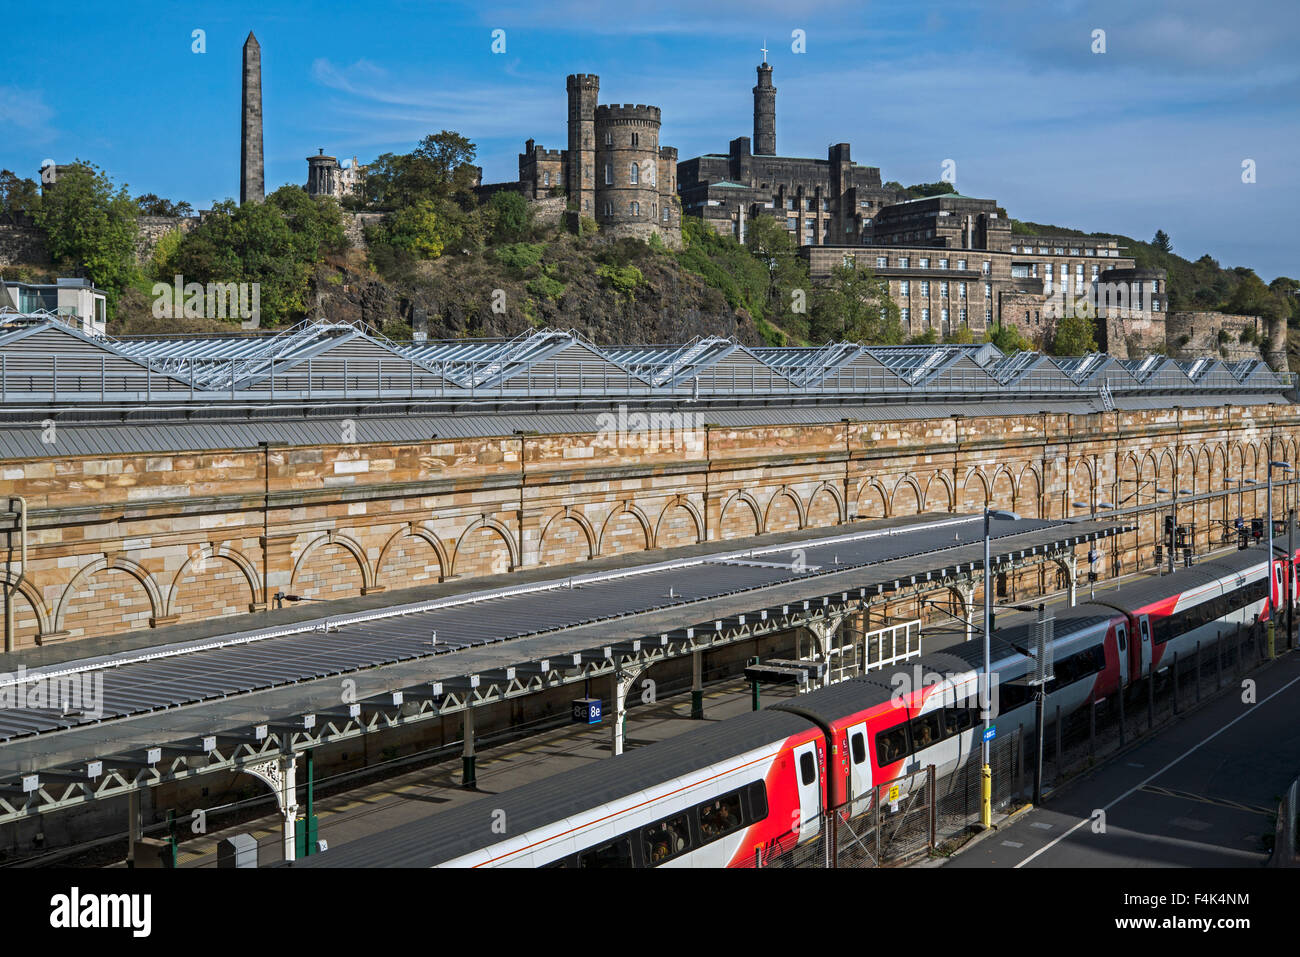 An Virgin train standing at Edinburgh's Waverley Station with Calton Hill in the background. - Stock Image